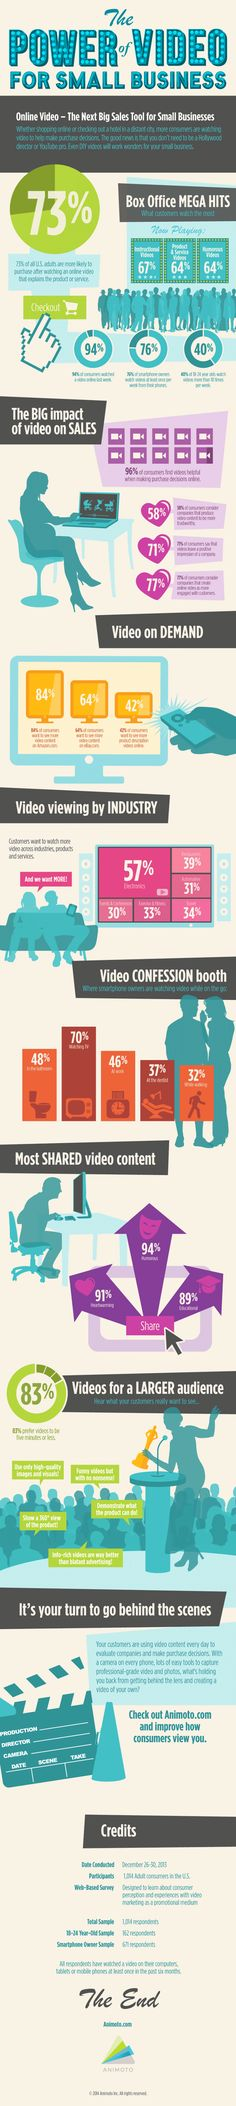 THE POWER OF #VIDEO FOR SMALL BUSINESS. #SMB #Marketing #Infographic